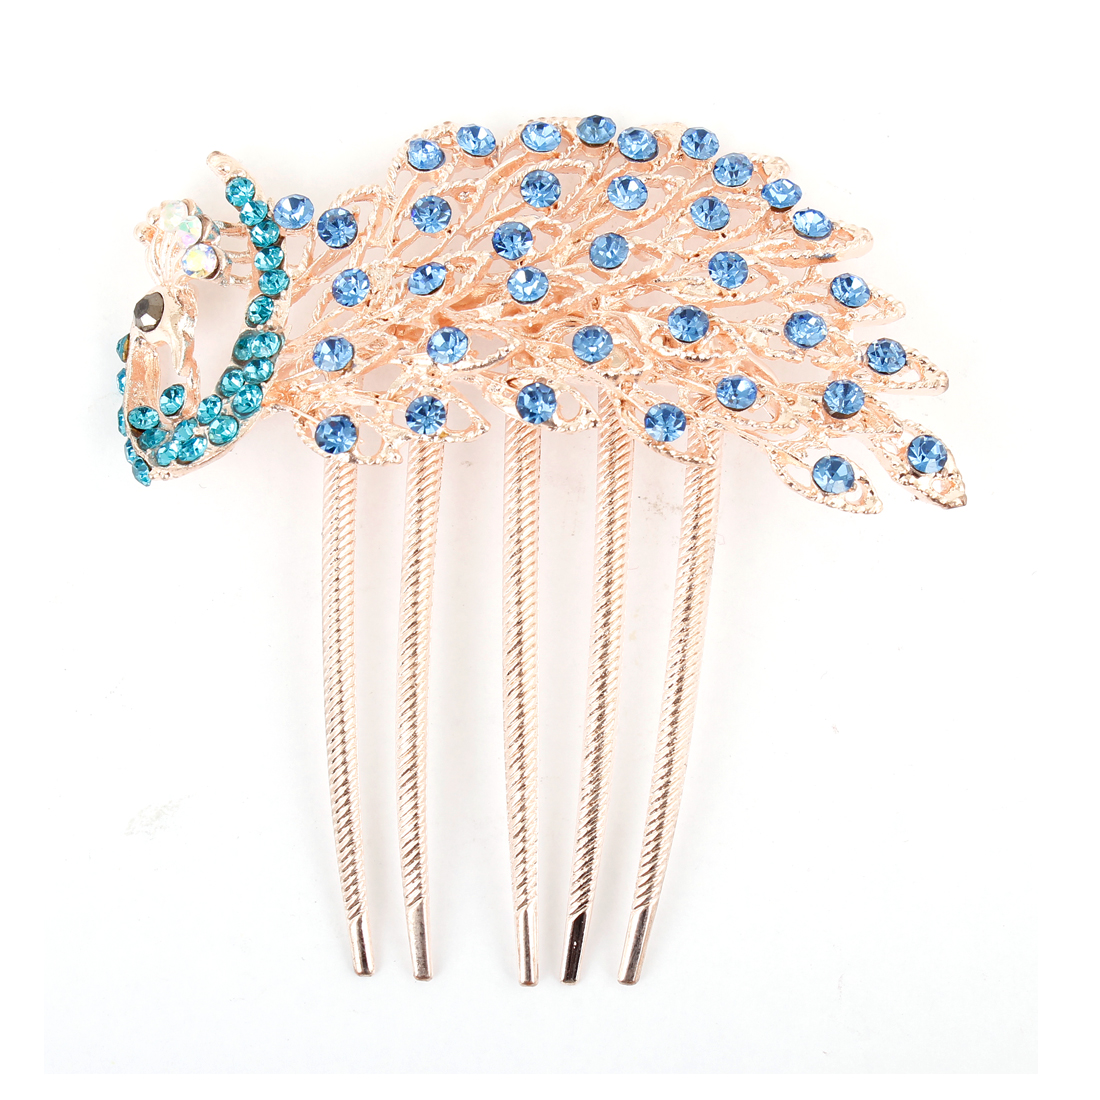 Teal Blue Sparkly Rhinestone Detail Metal Prong Peacock Hair Comb Clip Copper Tone